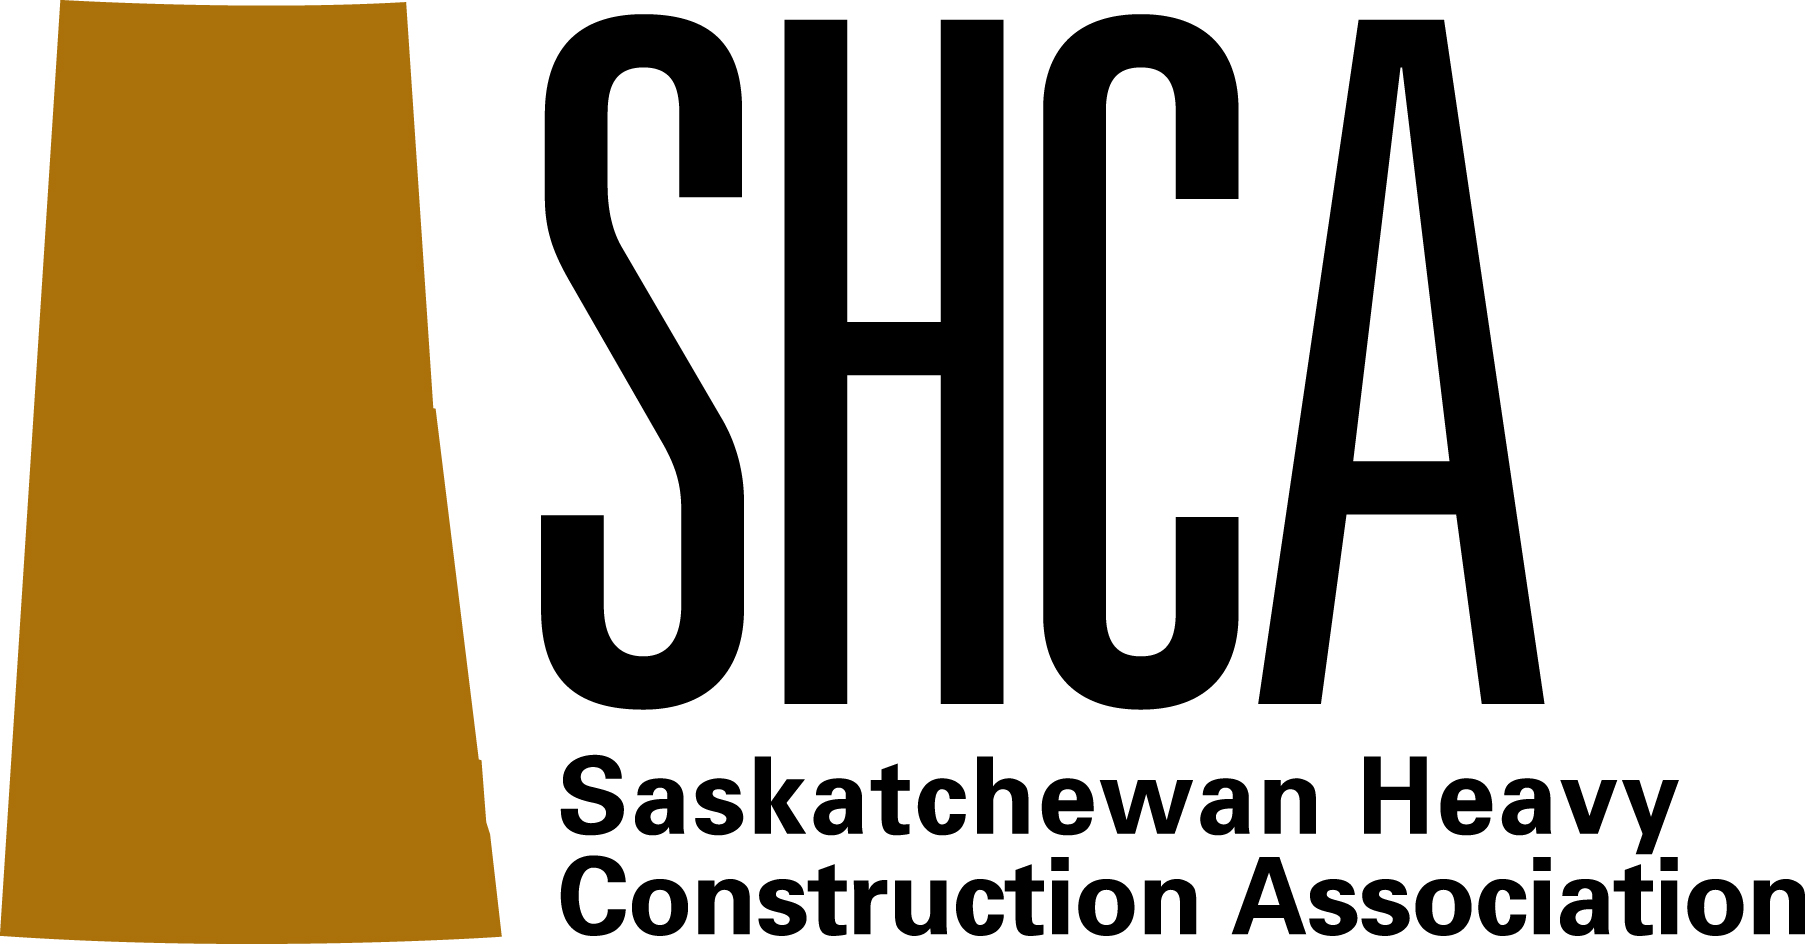 Sask. Heavy Construction Association